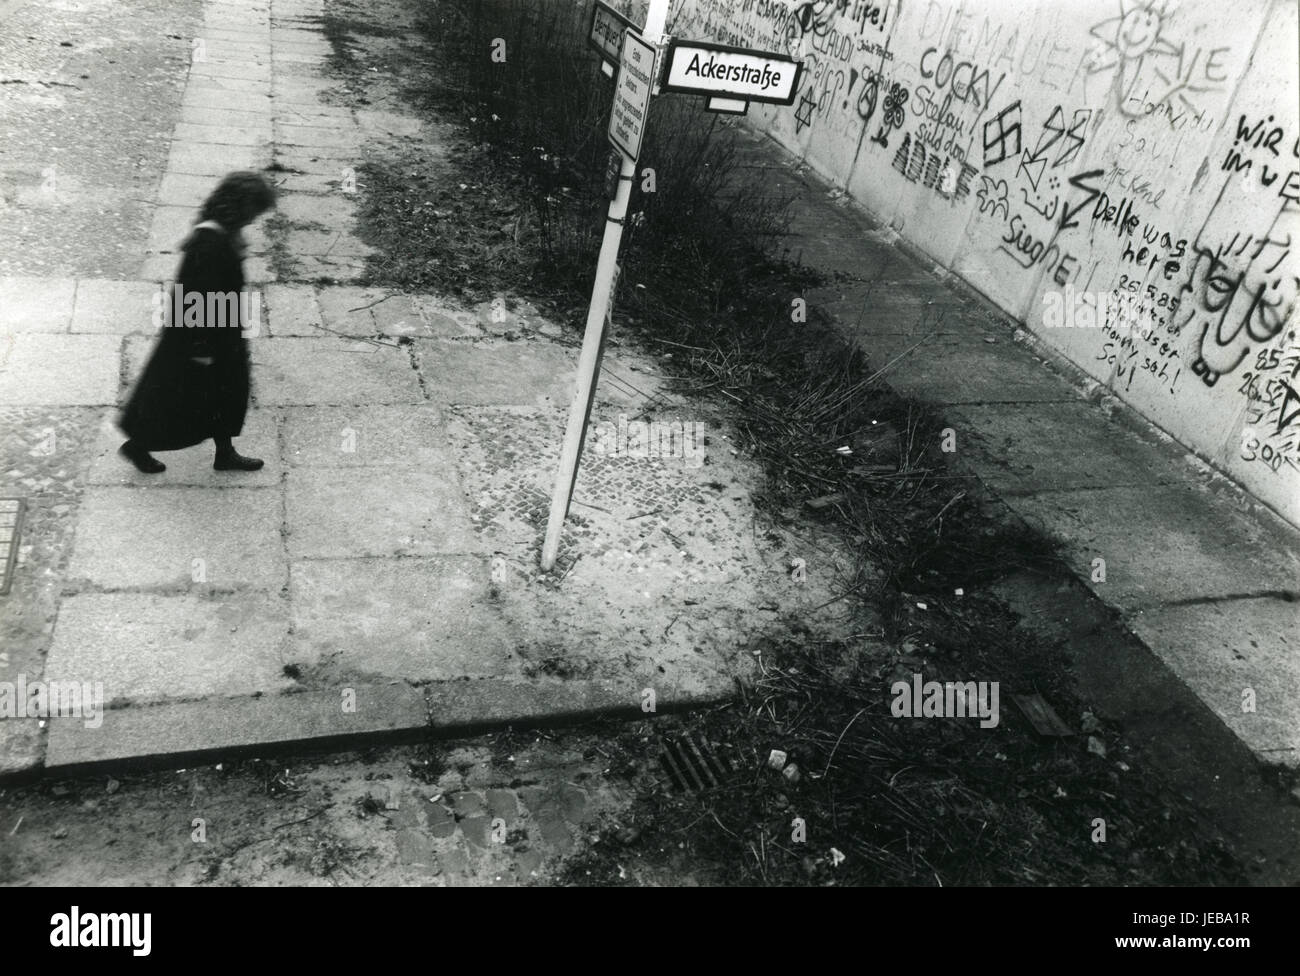 A lady walks towards the Berlin Wall at the junction of Ackerstraße and Bernauerstraße in Oct 1987 - Stock Image